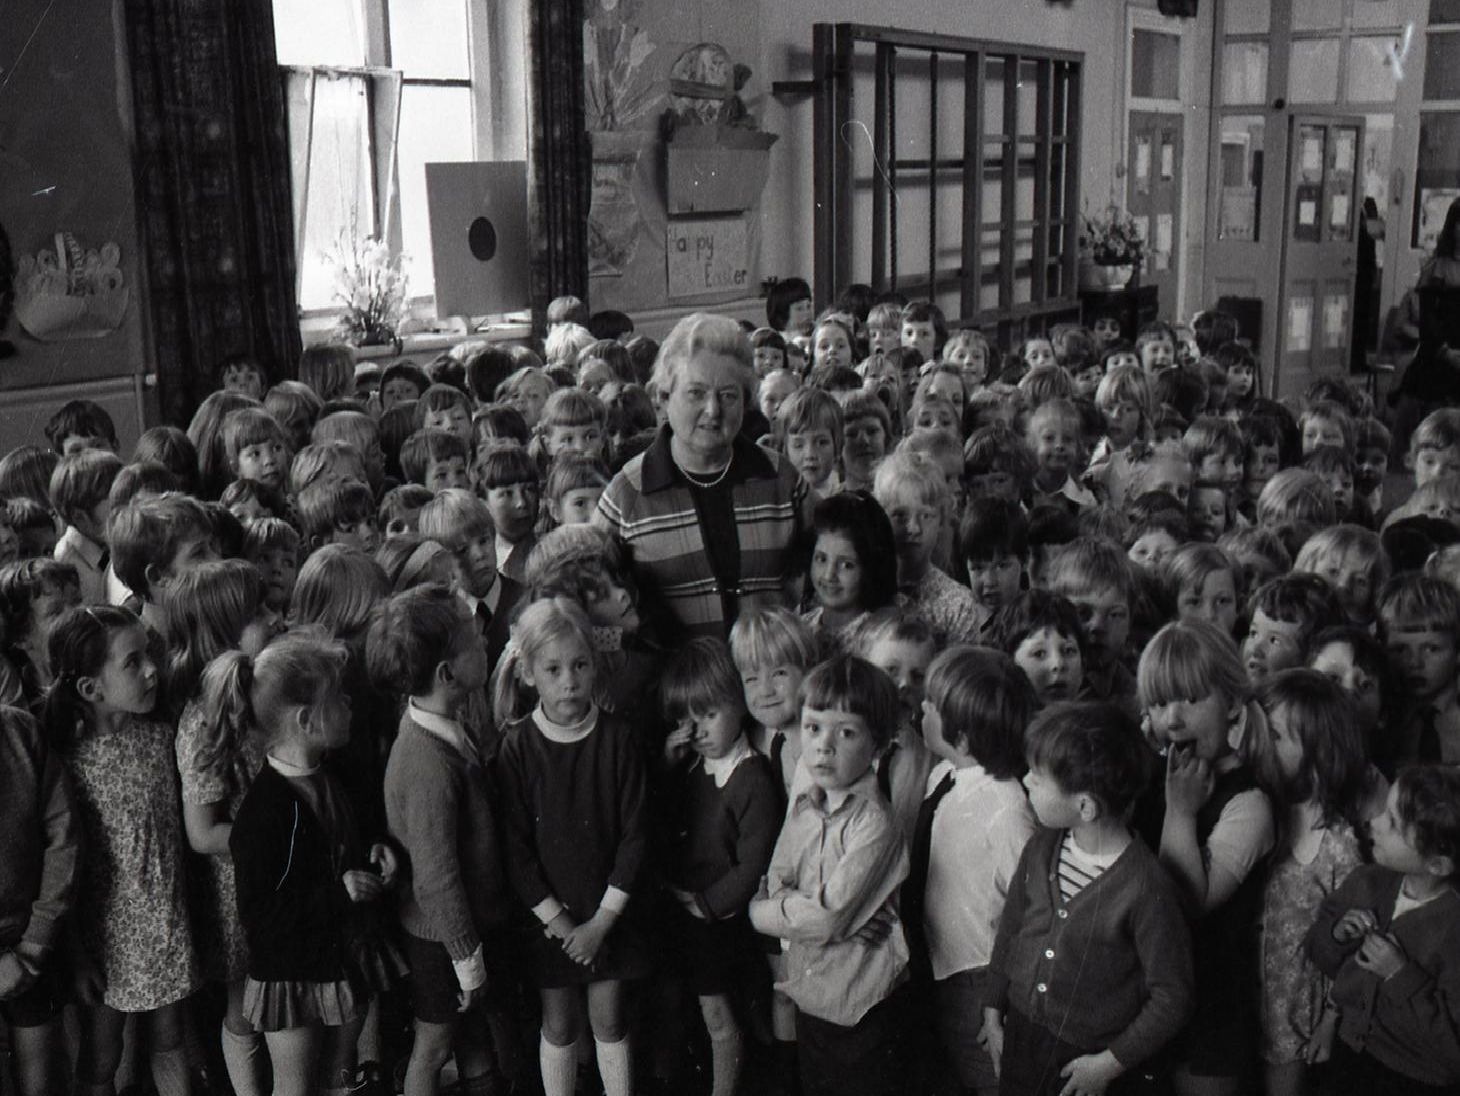 When Miss Marjorie Whittle attended St Andrew's Primary School in Ashton, Preston, 50 years ago, she never dreamt that she would end up as its headmistress. But that's just what she went on to do. And now, after spending almost her entire teaching career at the school, Miss Whittle is to retire. The school gave her a rousing send-off